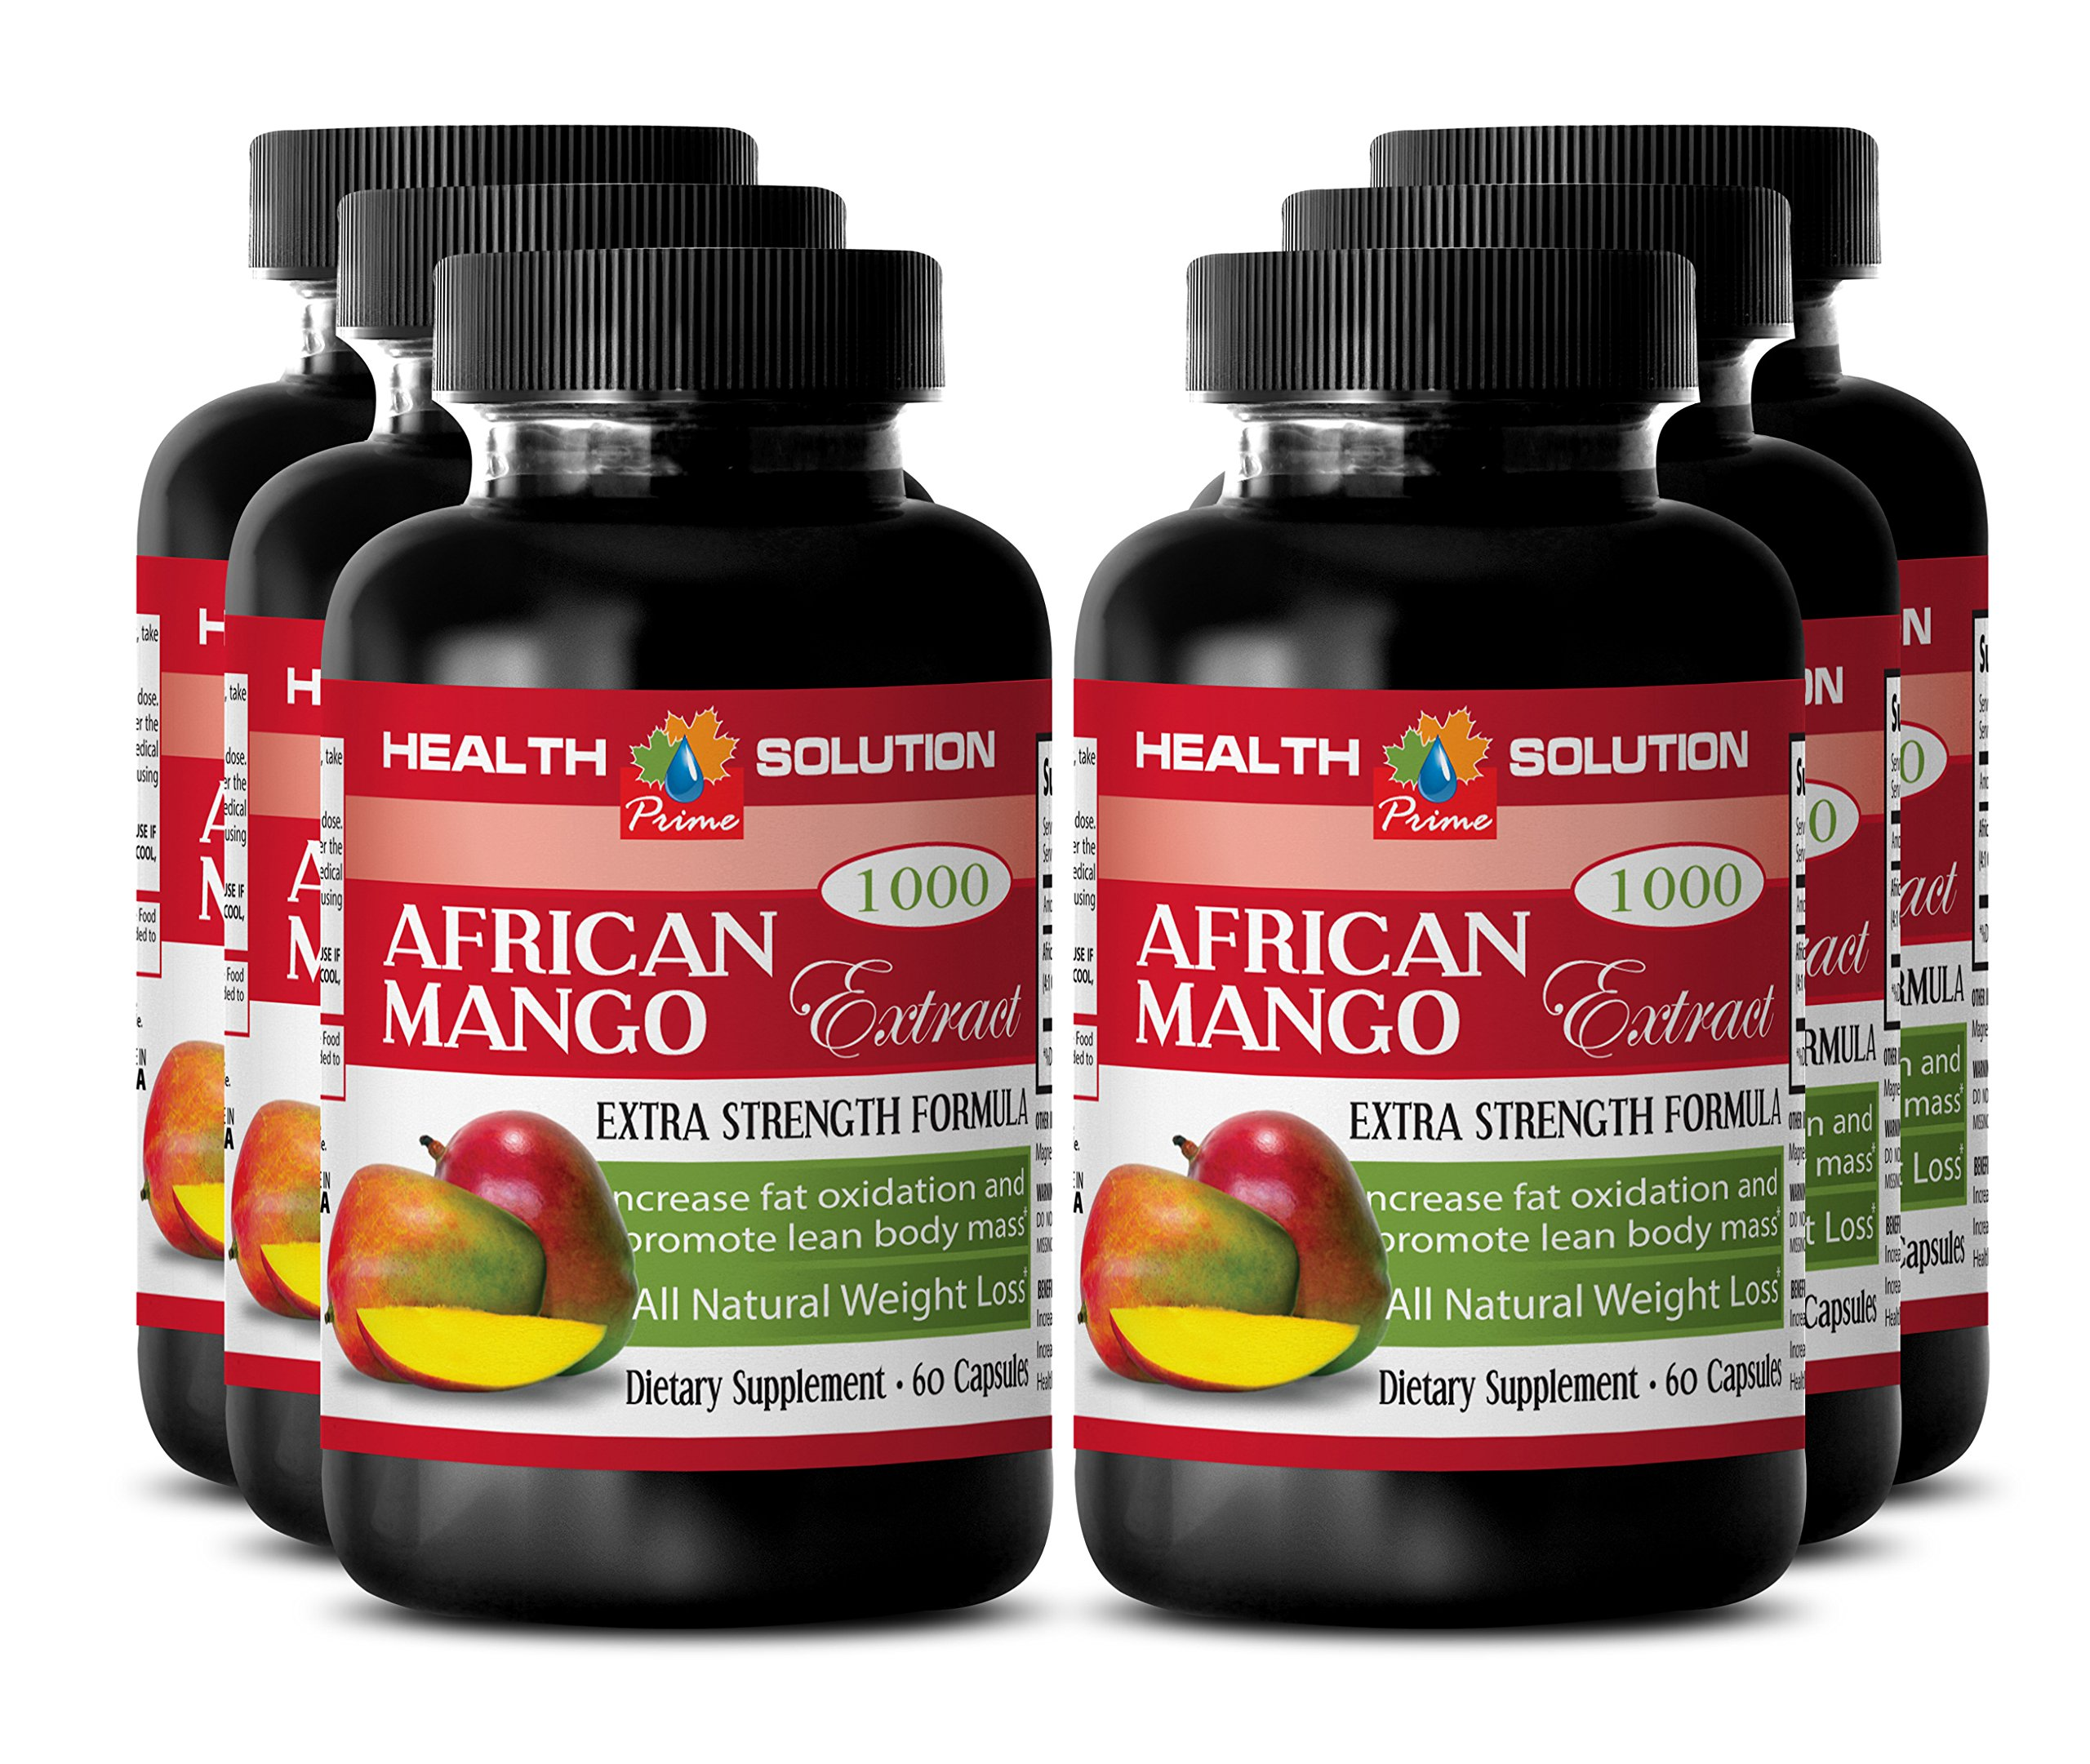 African Mango Cleanse - African Mango 4:1 Extract 1000 mg - Weight loosing pills (6 Bottles 360 capsules)